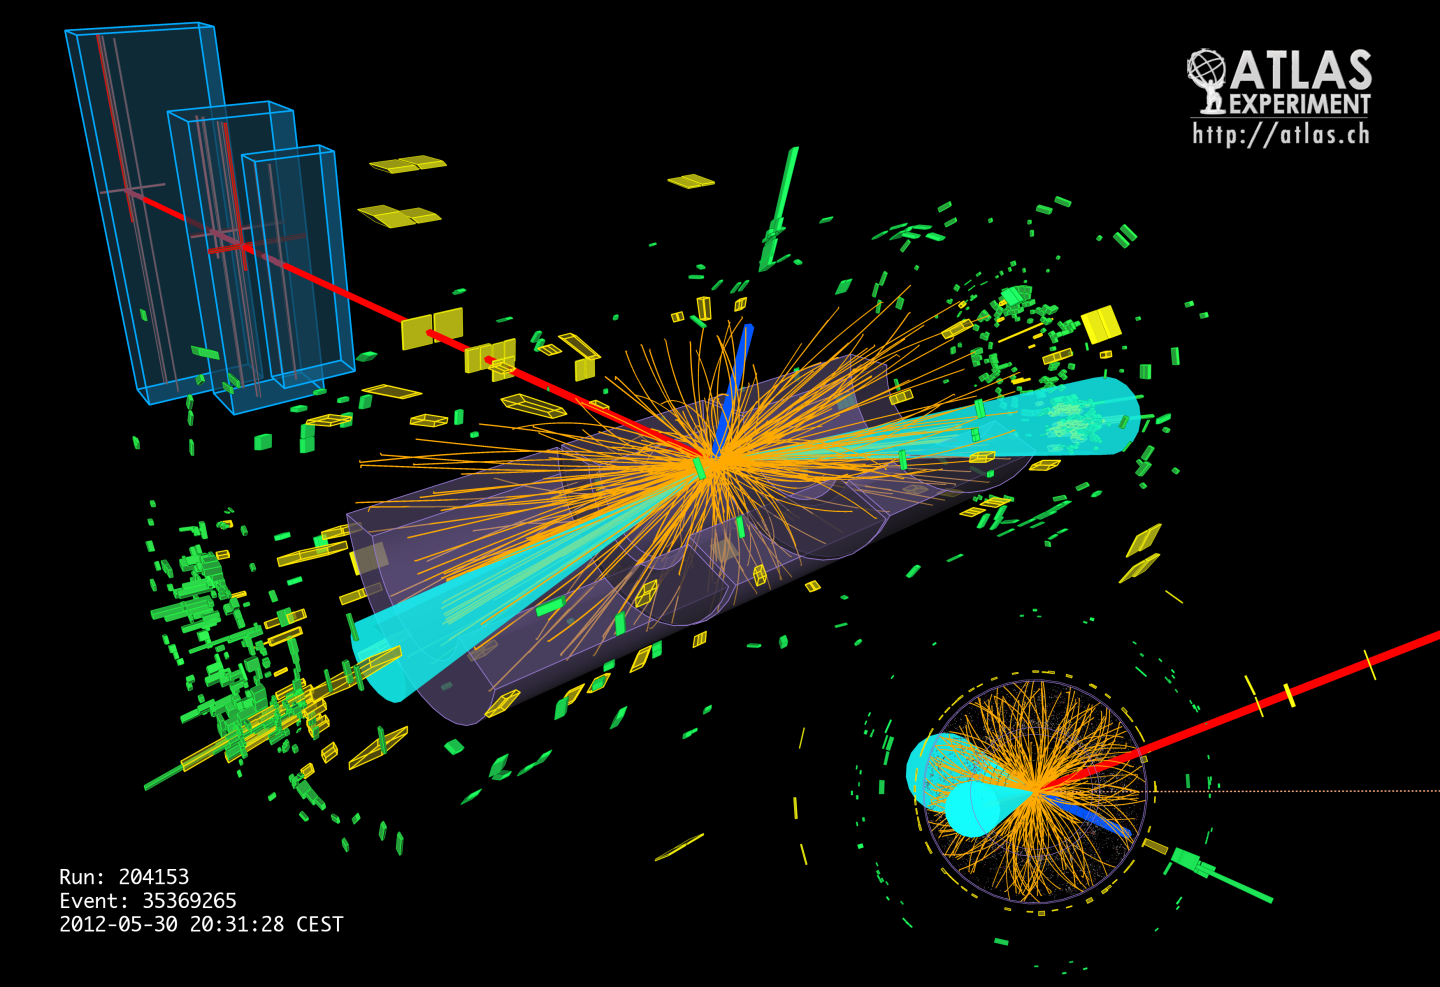 Higgs,Real Events,Higgs Boson,ATLAS,Physics Events,Event Display,2-Tau,Experiments and Tracks